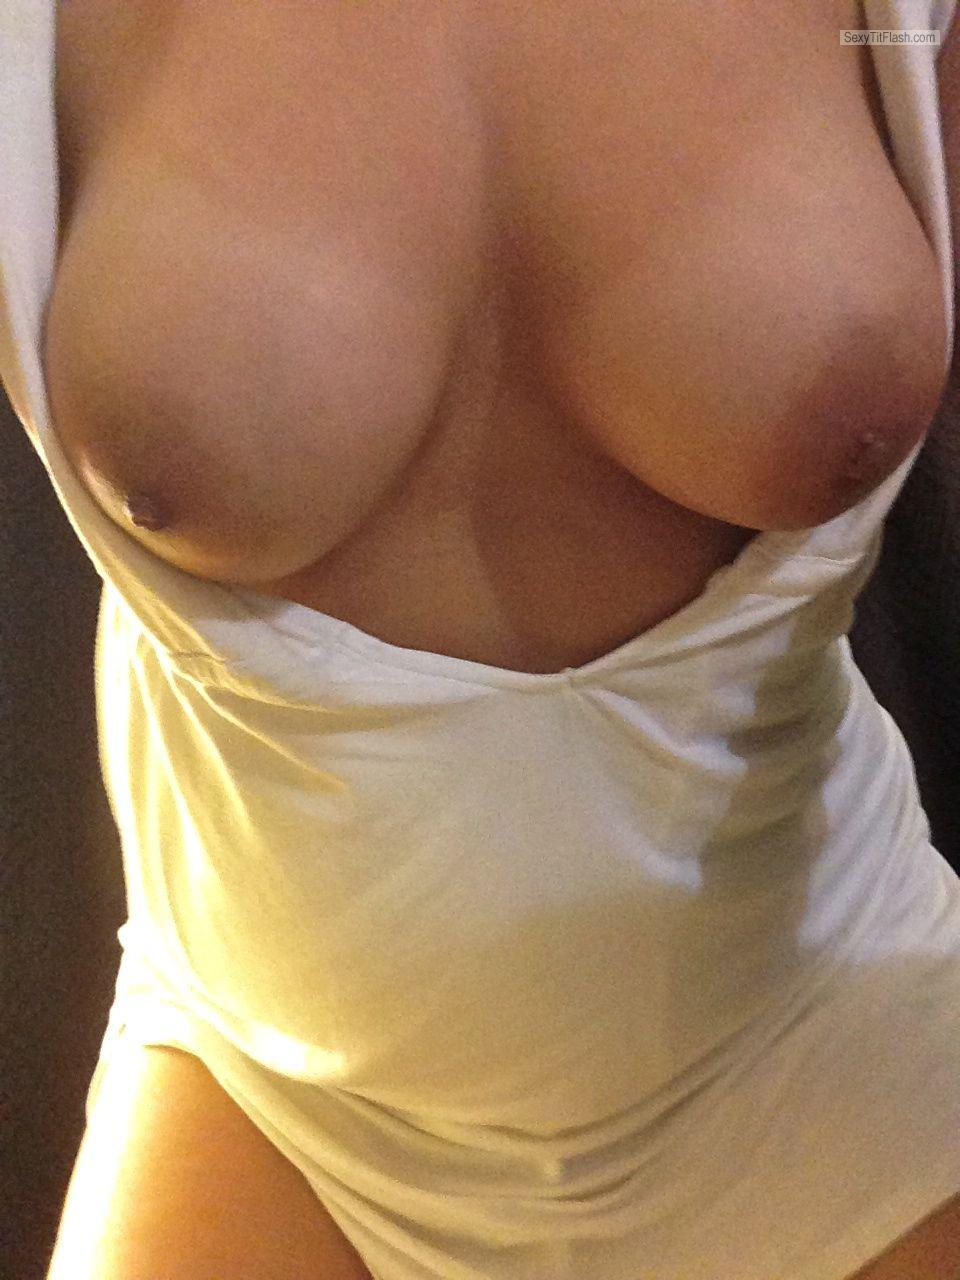 My Medium Tits Selfie by BB